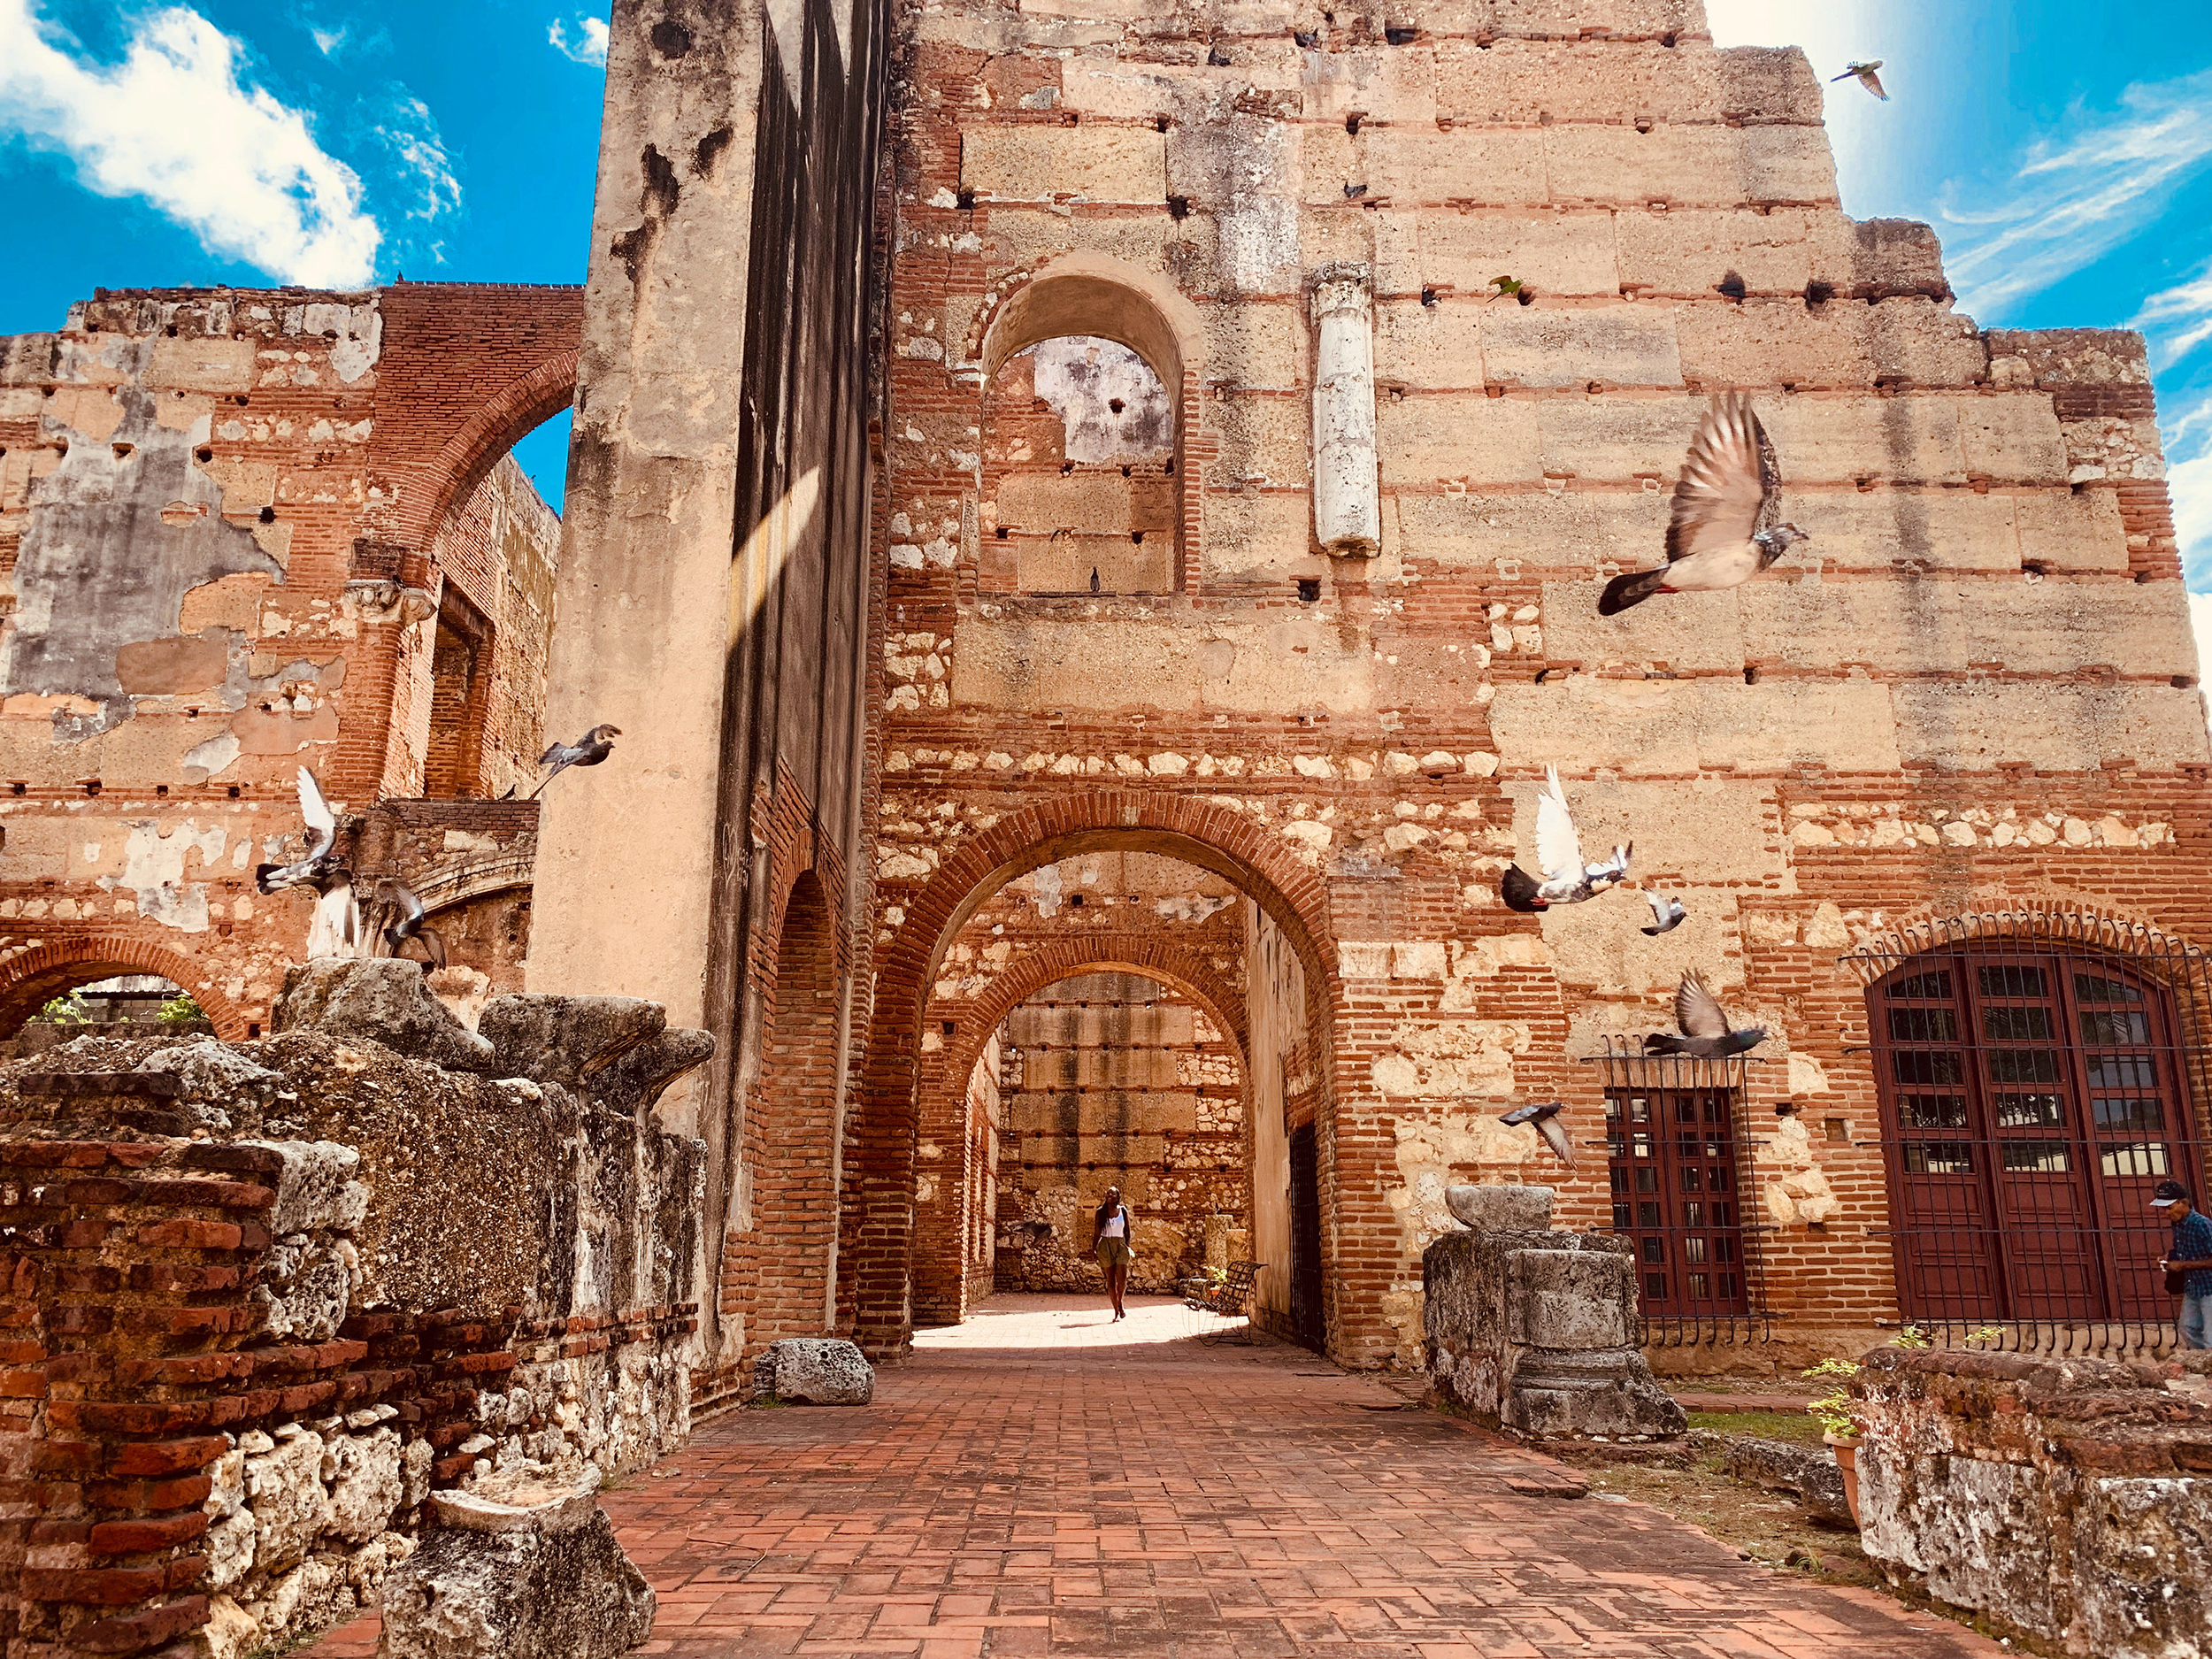 Hospital San Nicolás de Bari | The preserved ruins are home today to hundreds of parrots and pigeons.